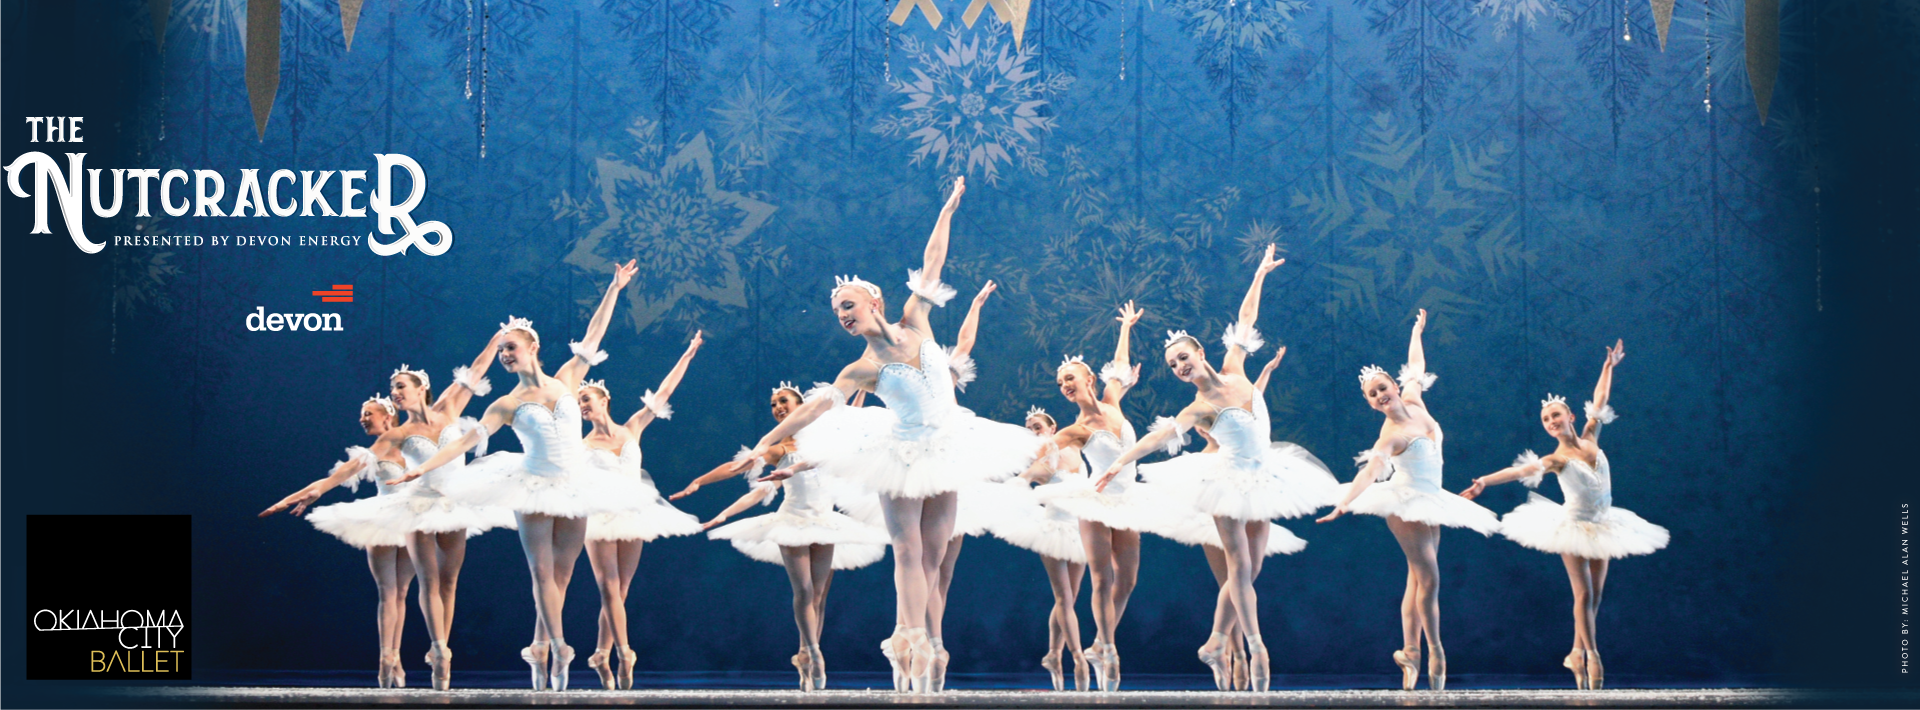 The Nutcracker presented by Devon Energy